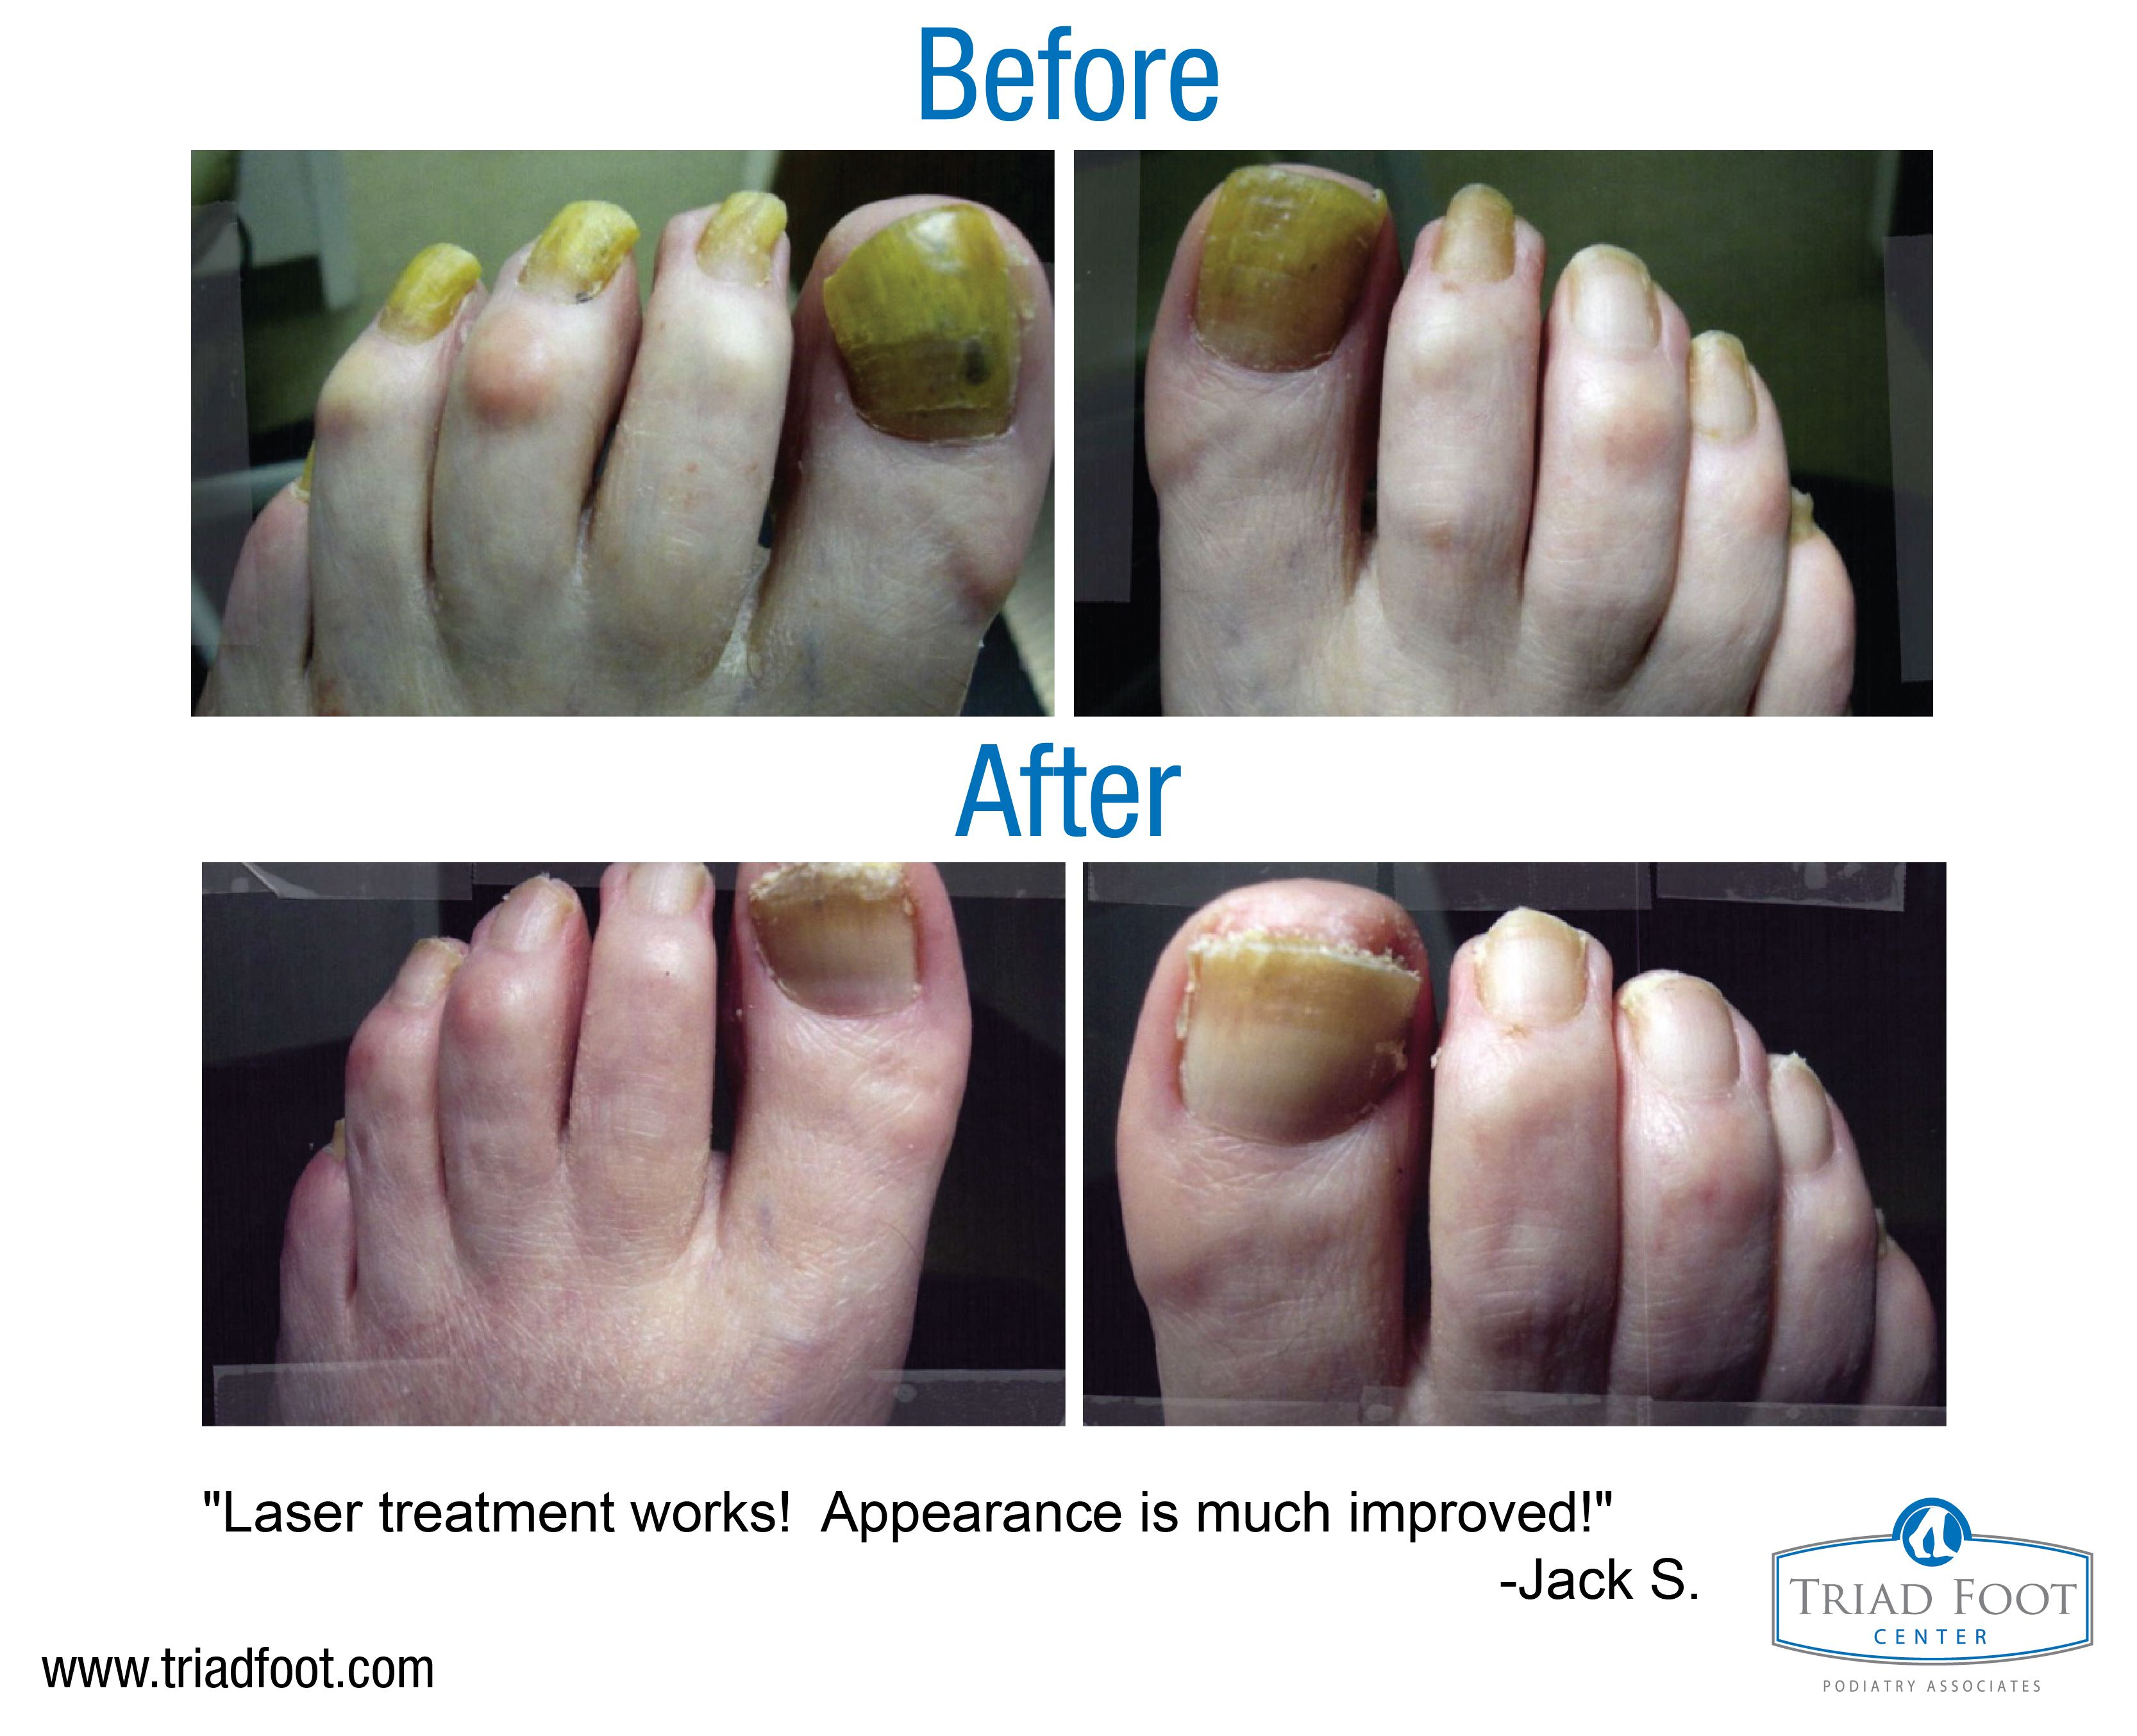 Jack was embarrassed by his unsightly toenails After laser